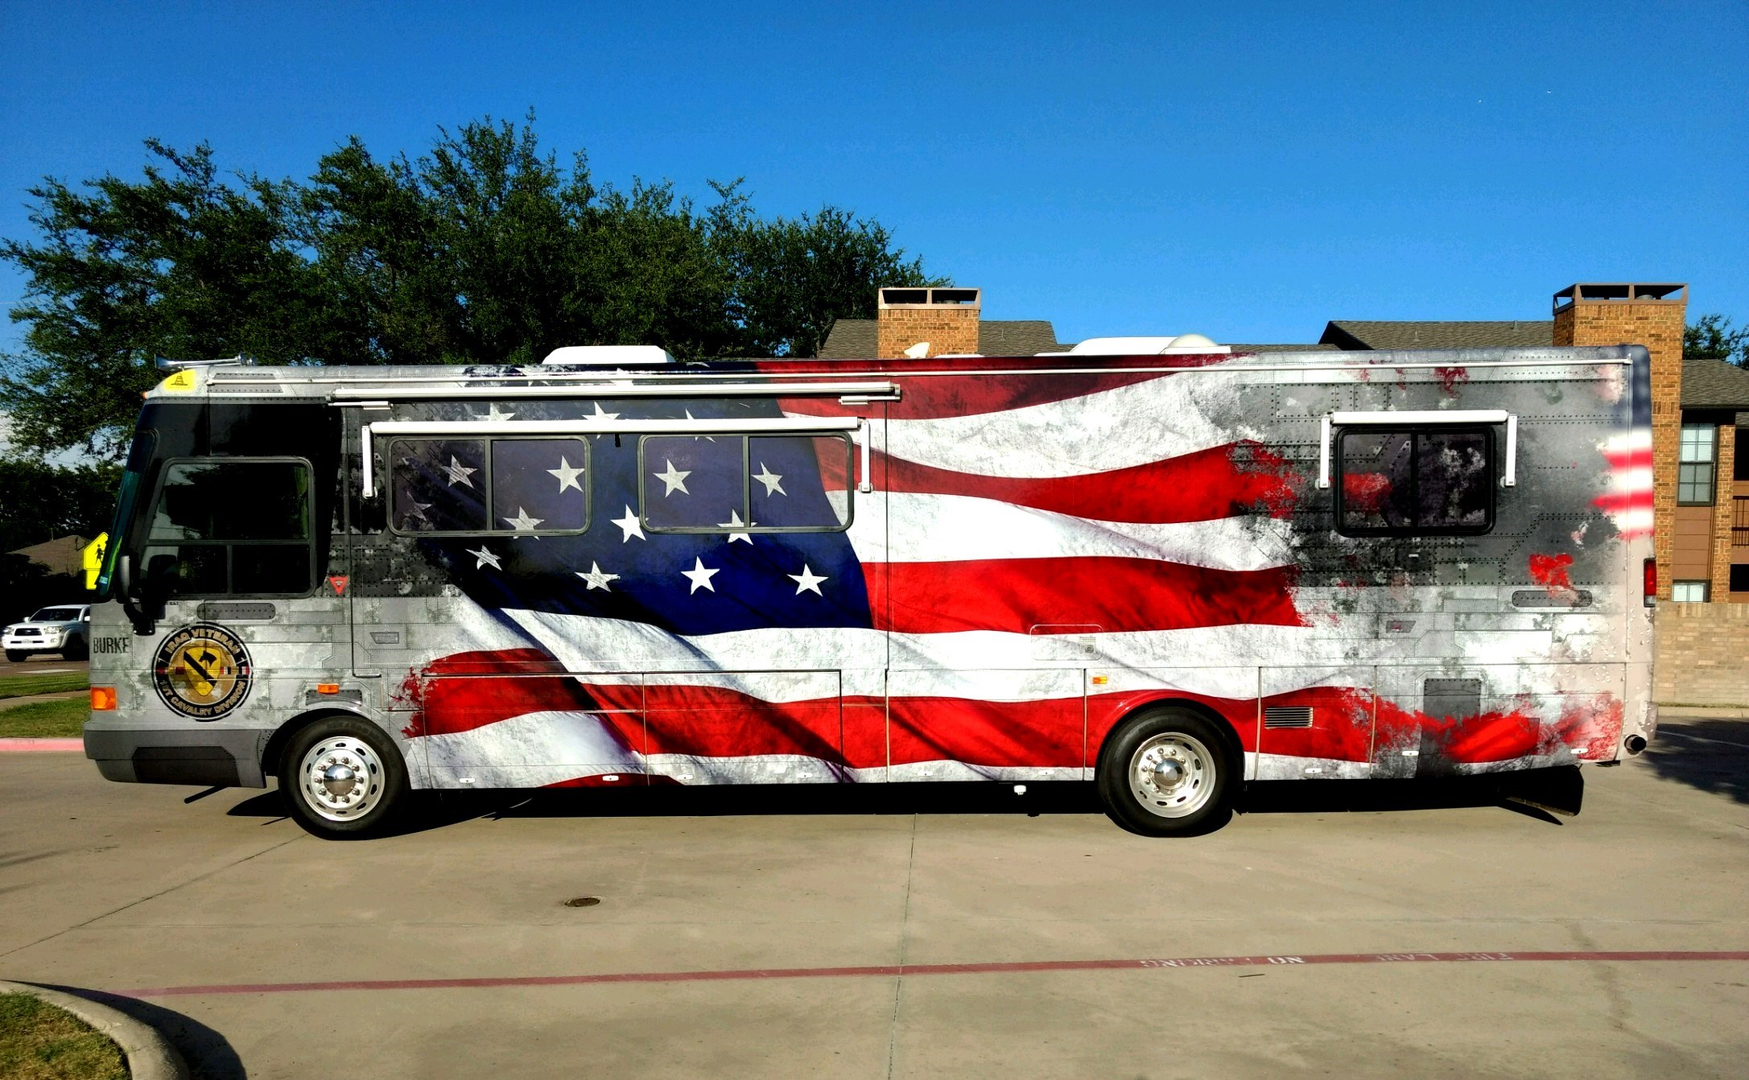 Buses rvs chart bus wraps custom bus graphics custom bus decals fleet wraps